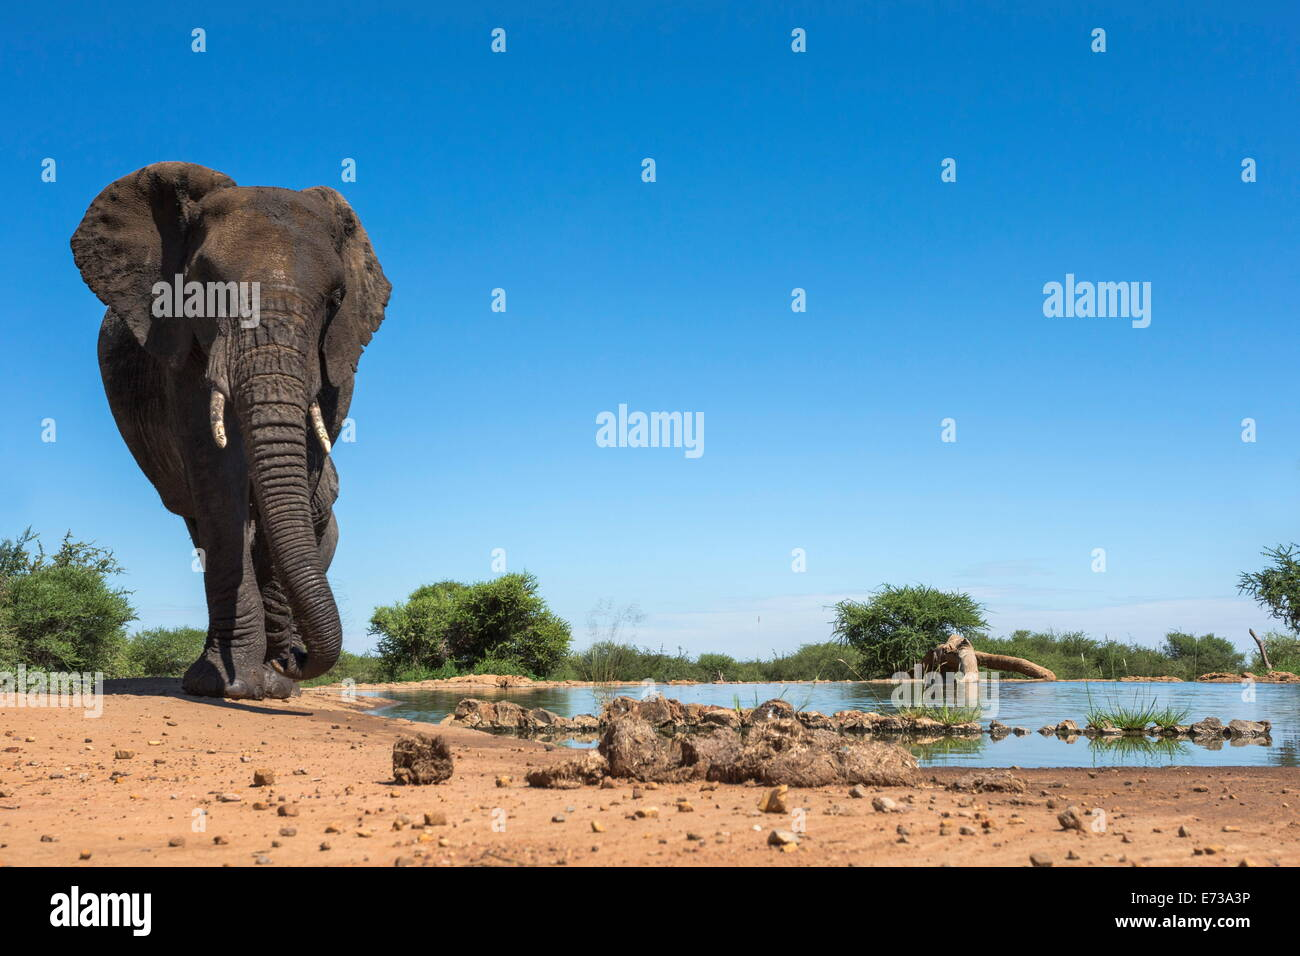 African elephant (Loxodonta africana) at waterhole, Madikwe Game Reserve, North West Province, South Africa, Africa - Stock Image